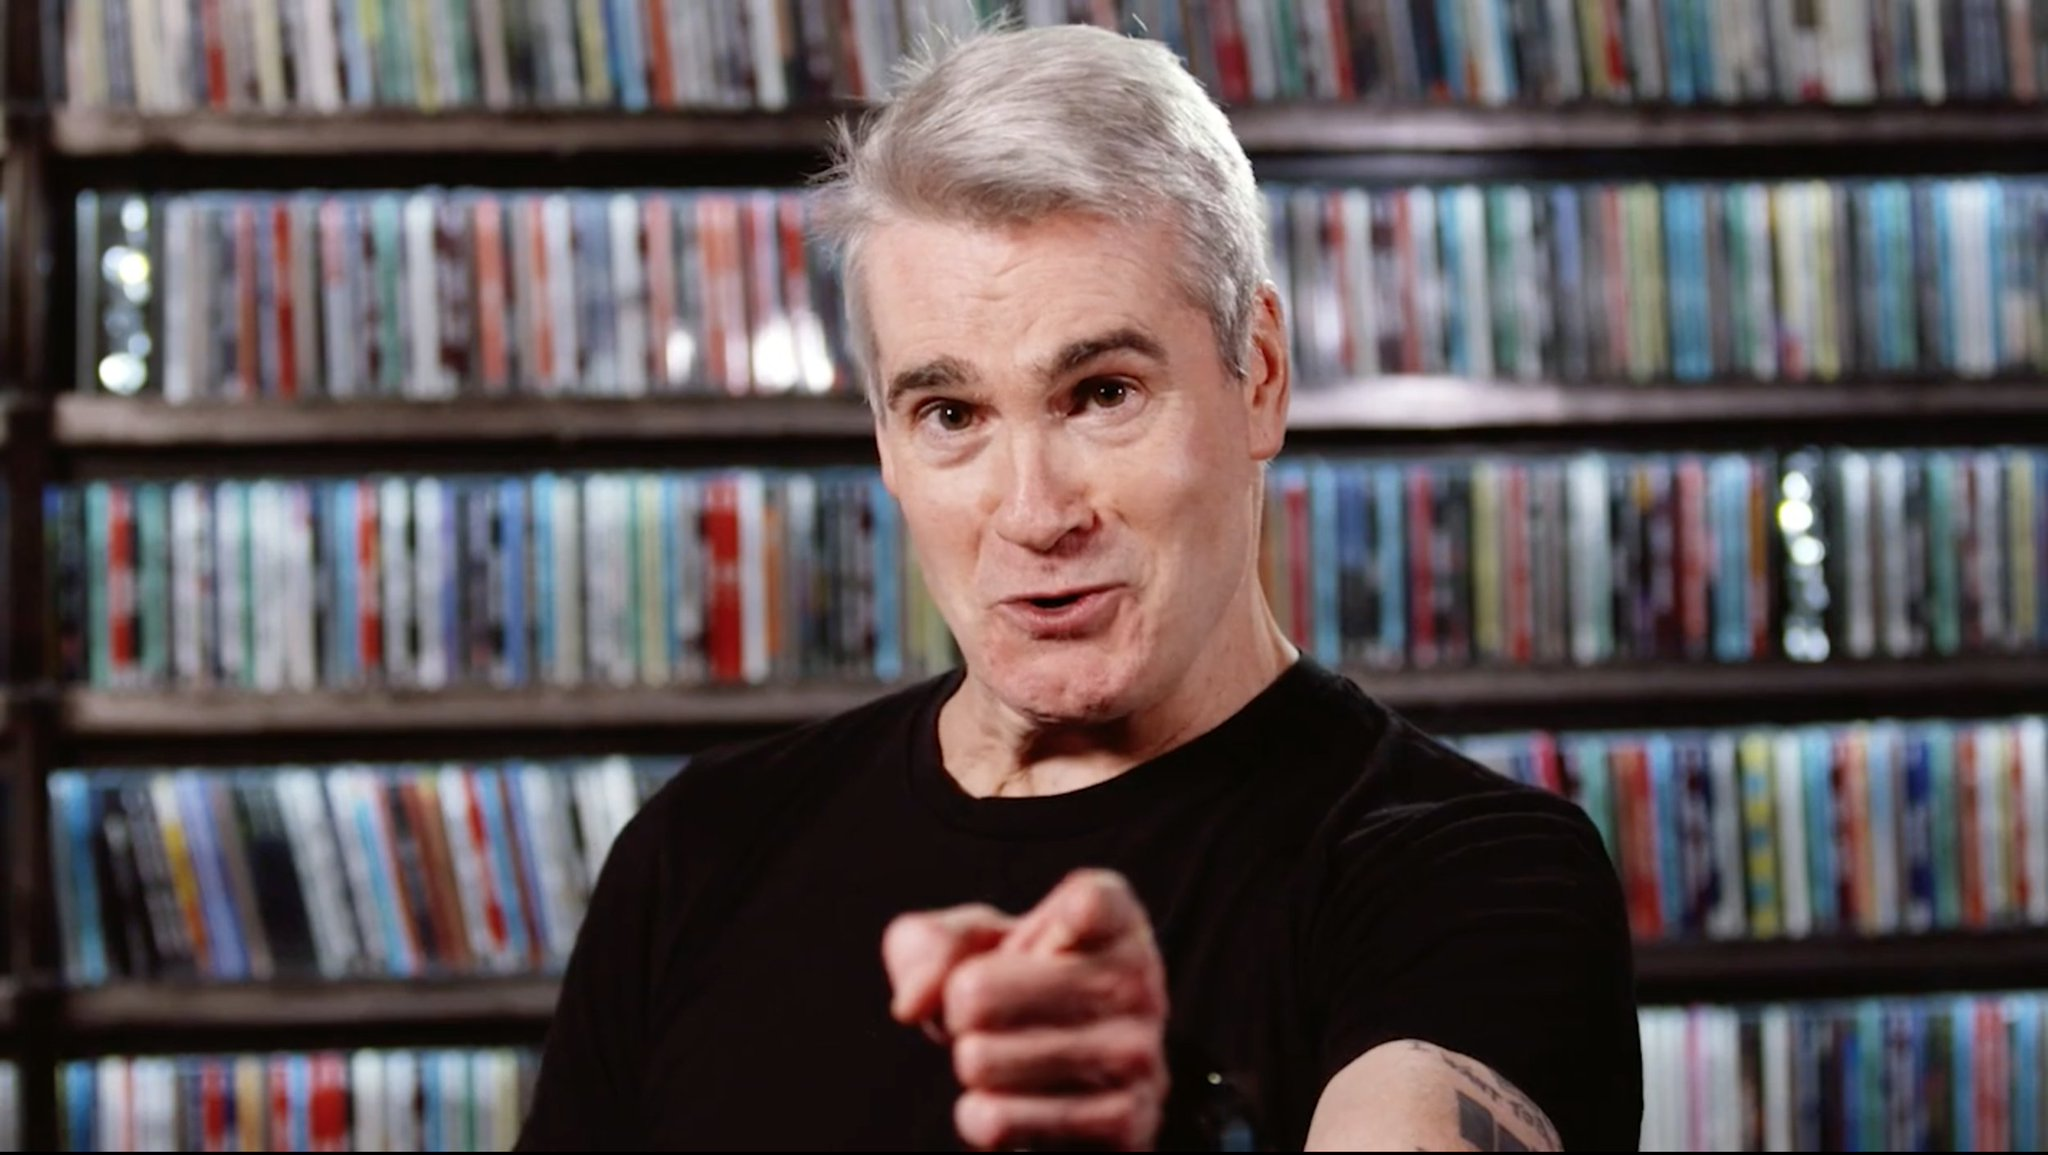 Happy Birthday to Henry Rollins.